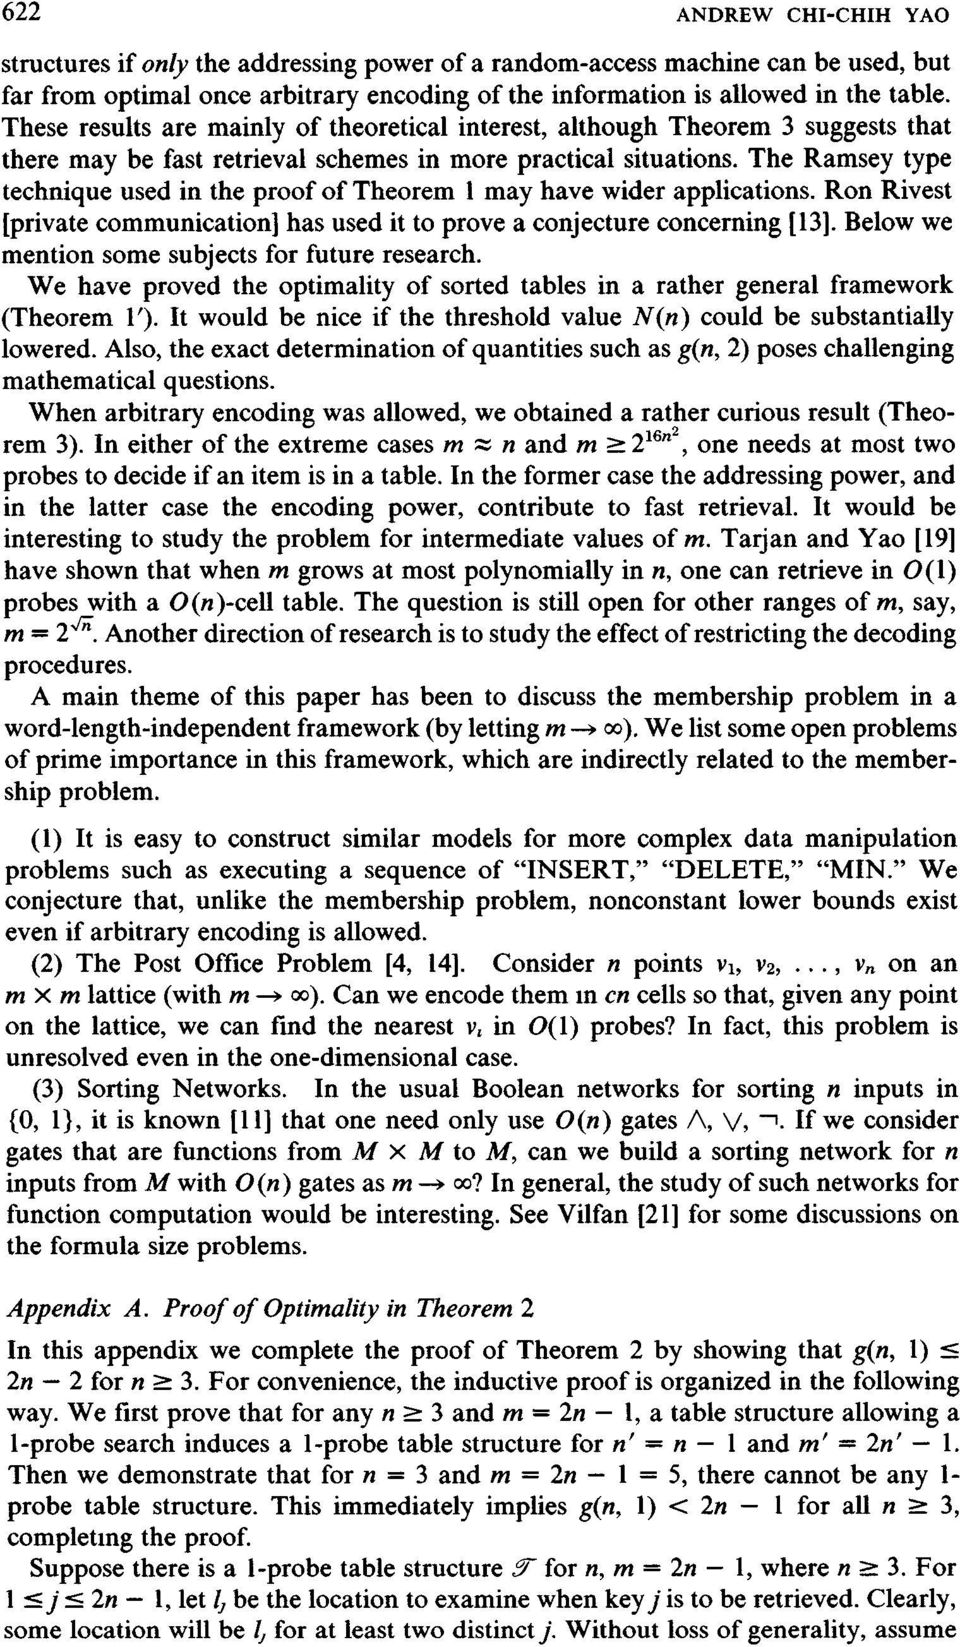 The Ramsey type technique used in the proof of Theorem 1 may have wider applications. Ron Rivest [private communication] has used it to prove a conjecture concerning [13].